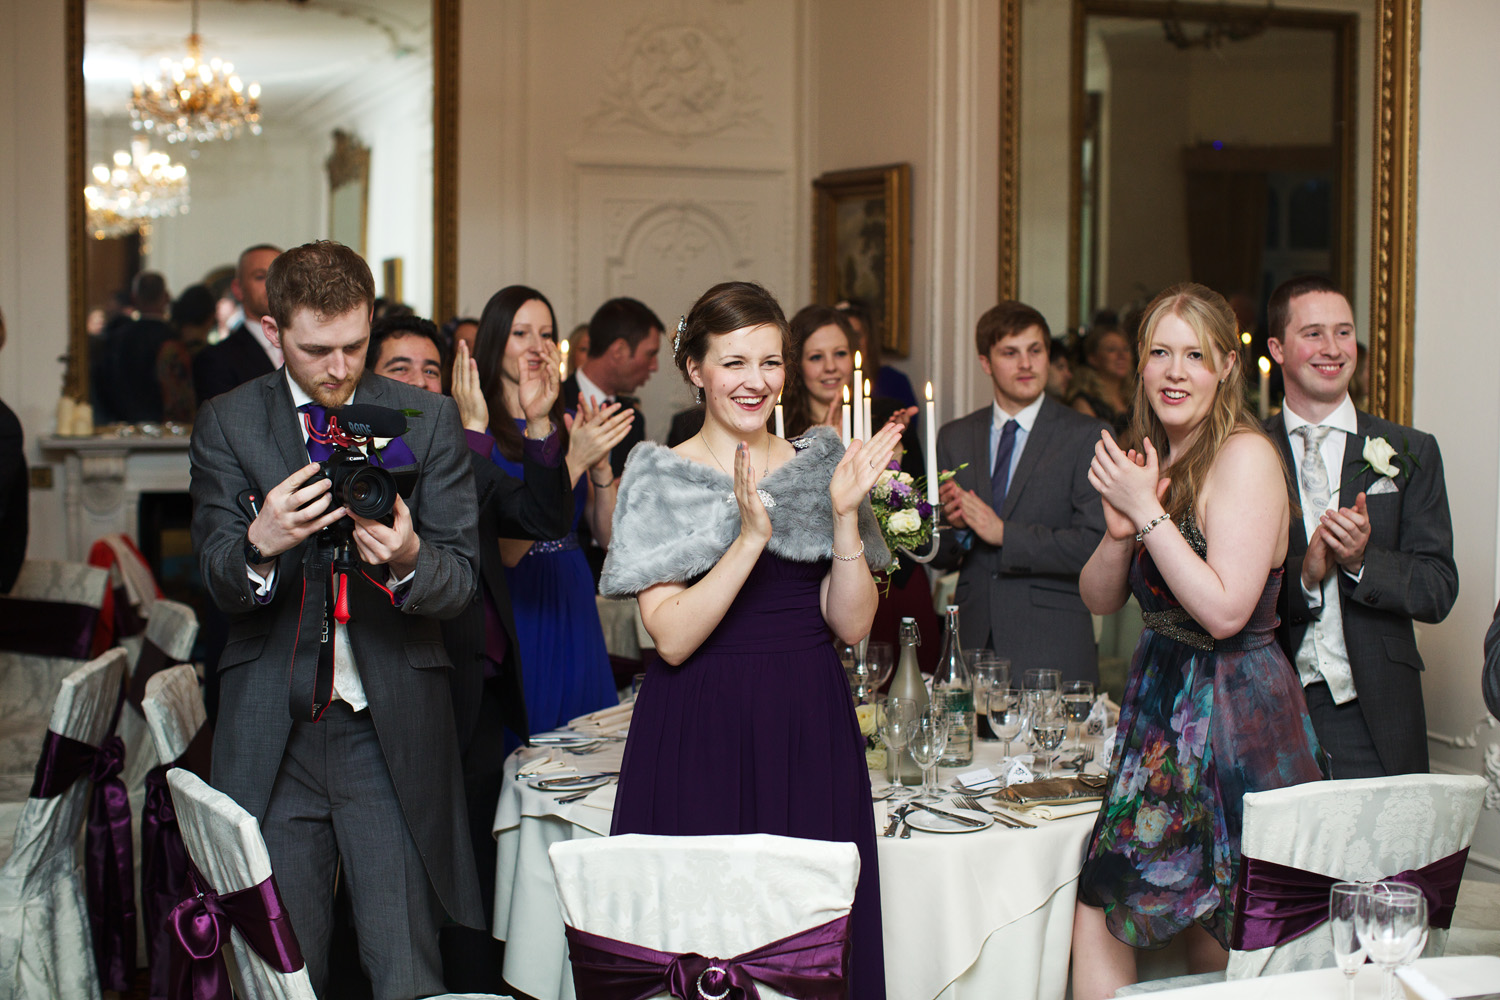 Taplow_House_Hotel_Wedding_Photographer_Maidenhead_052.jpg